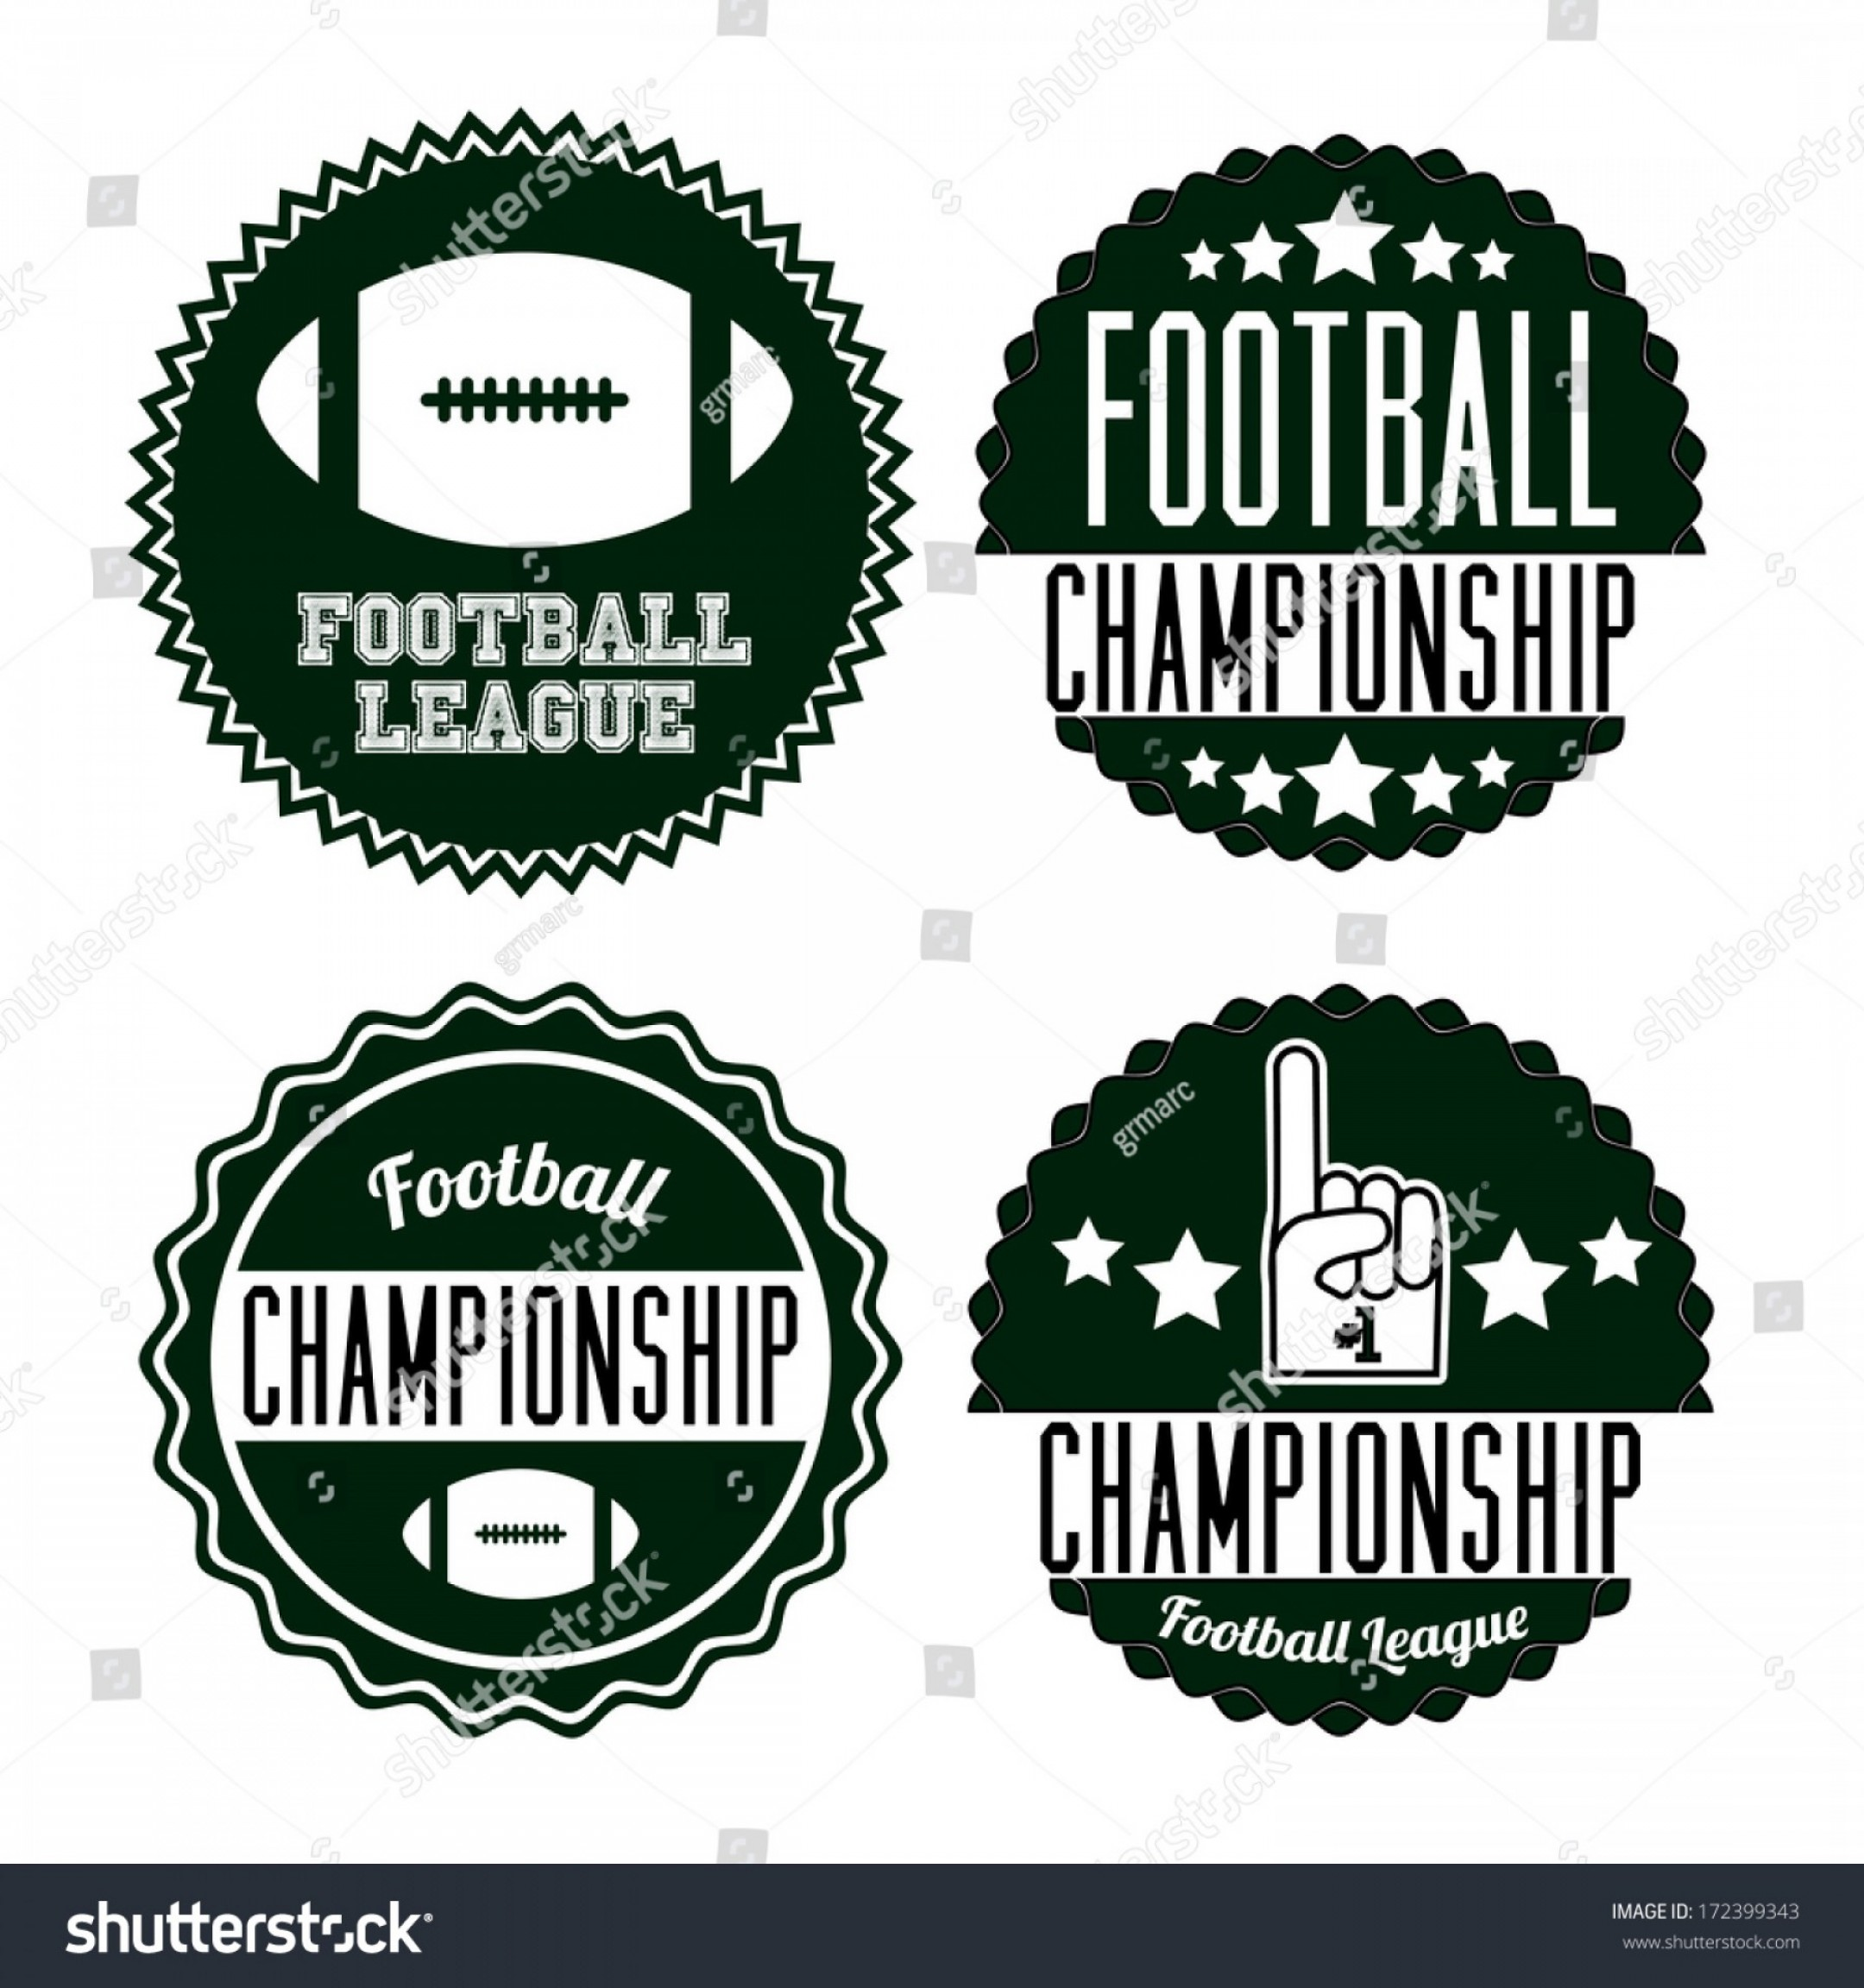 Football Laces Vector Design: American Football Design Over White Background